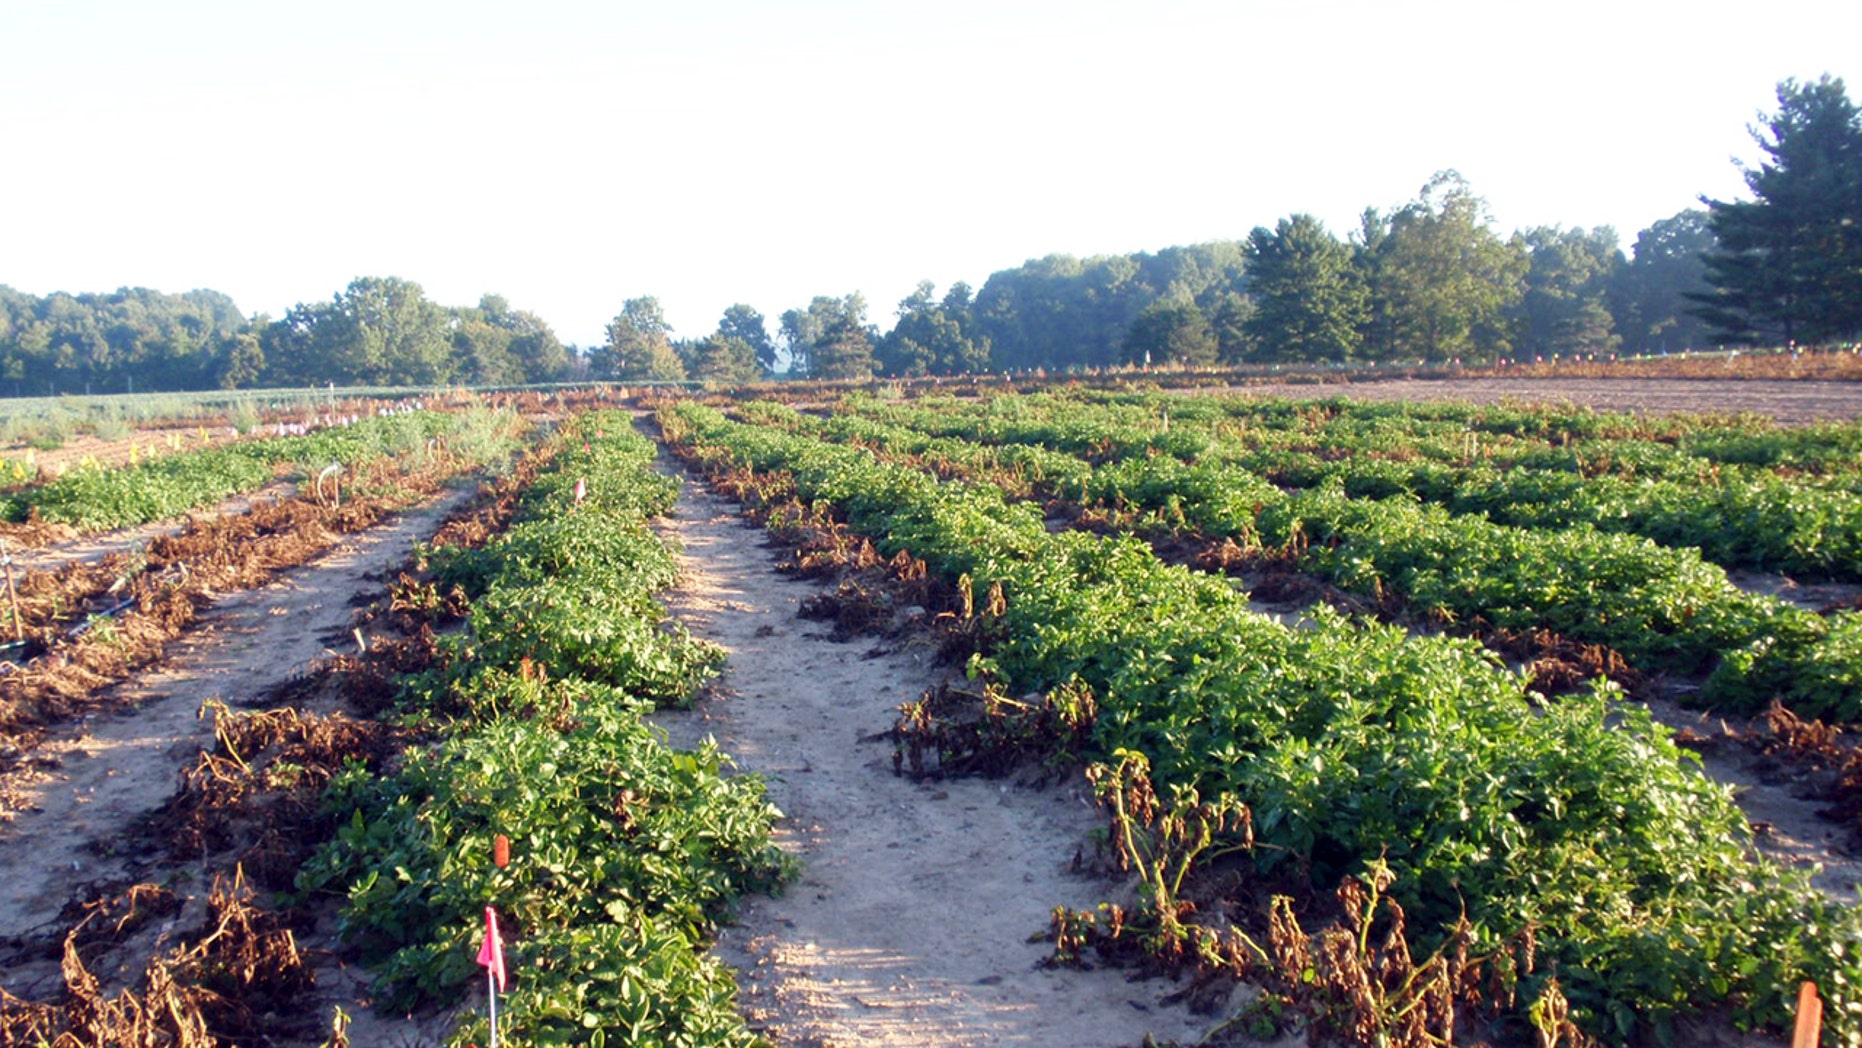 This 2013 photo taken at Michigan State University in East Lansing, Mich., and supplied by J.R. Simplot Company shows wilted conventional potato plants without resistance to the pathogen that caused the Irish potato famine on the left next to surviving rows of J.R. Simplot Co's genetically engineered potato plants that resist the disease.